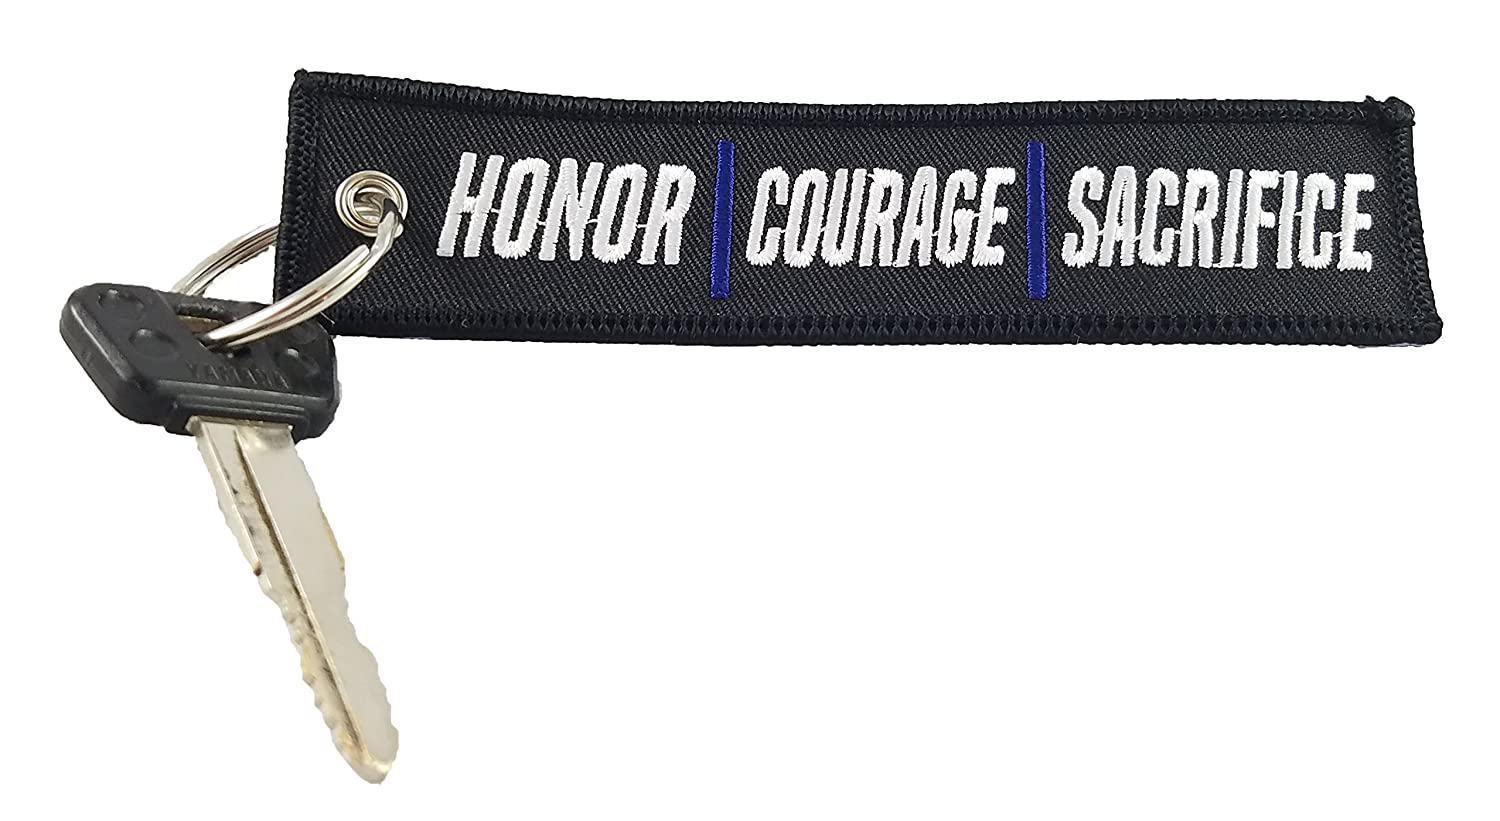 Scooters Cars Centurion Goods Great Gifts. POW//MIA Veteran Fire Keys For a Cause Keychains for Motorcycles Police CG Keytags First Responder Heartbeat